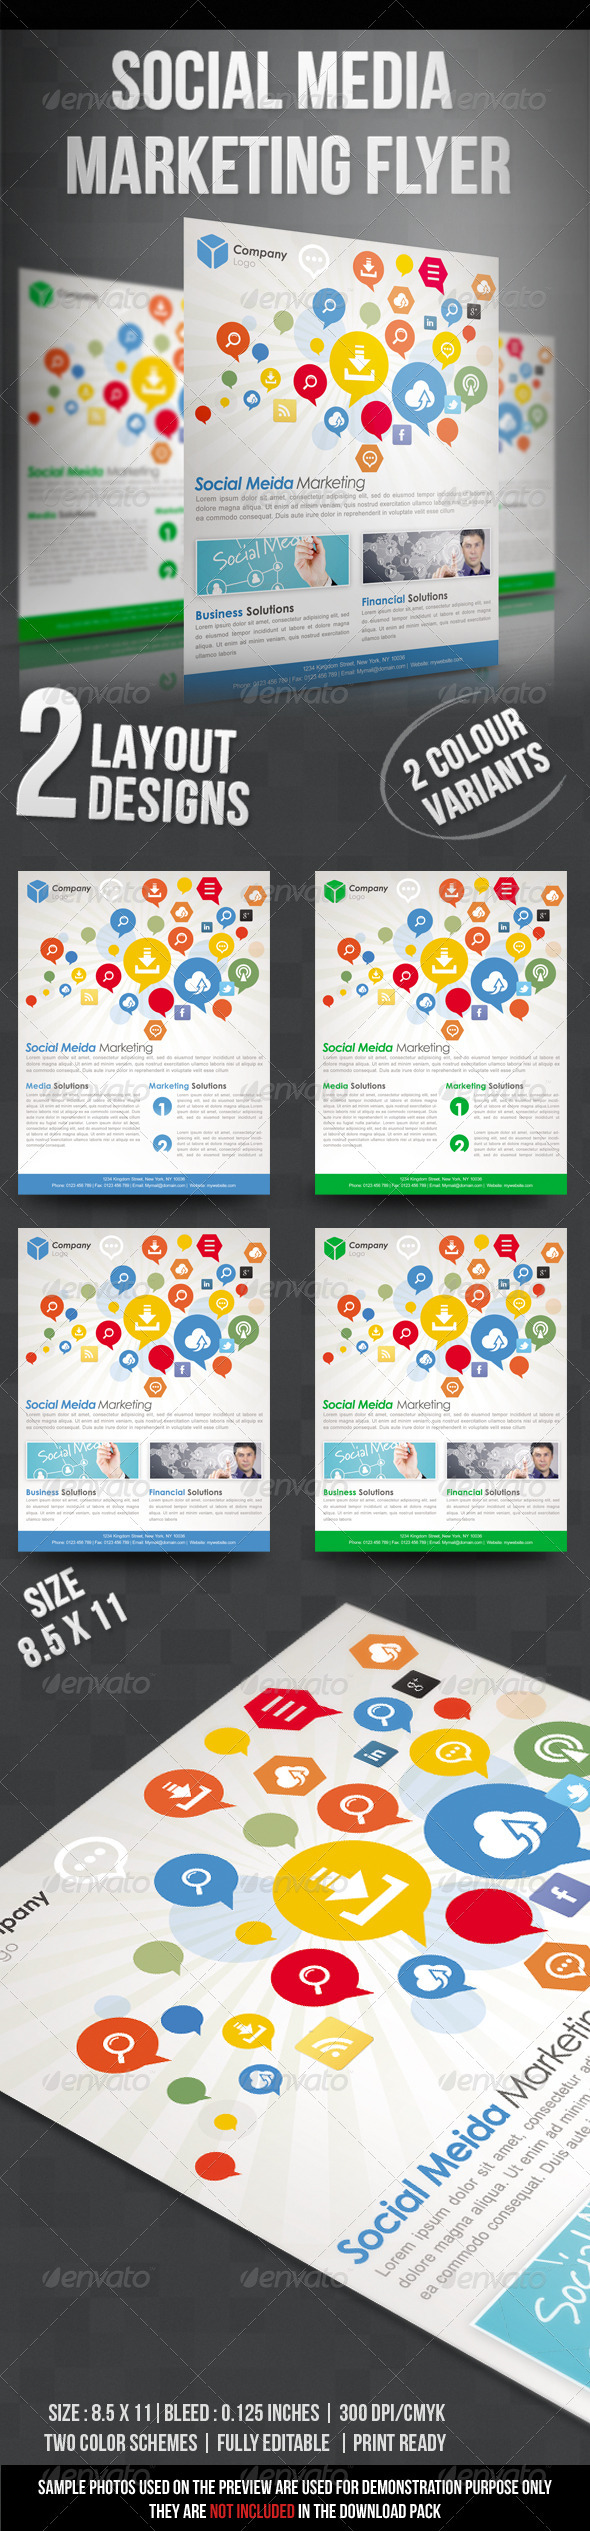 GraphicRiver Social Media Marketing Flyer 3795020